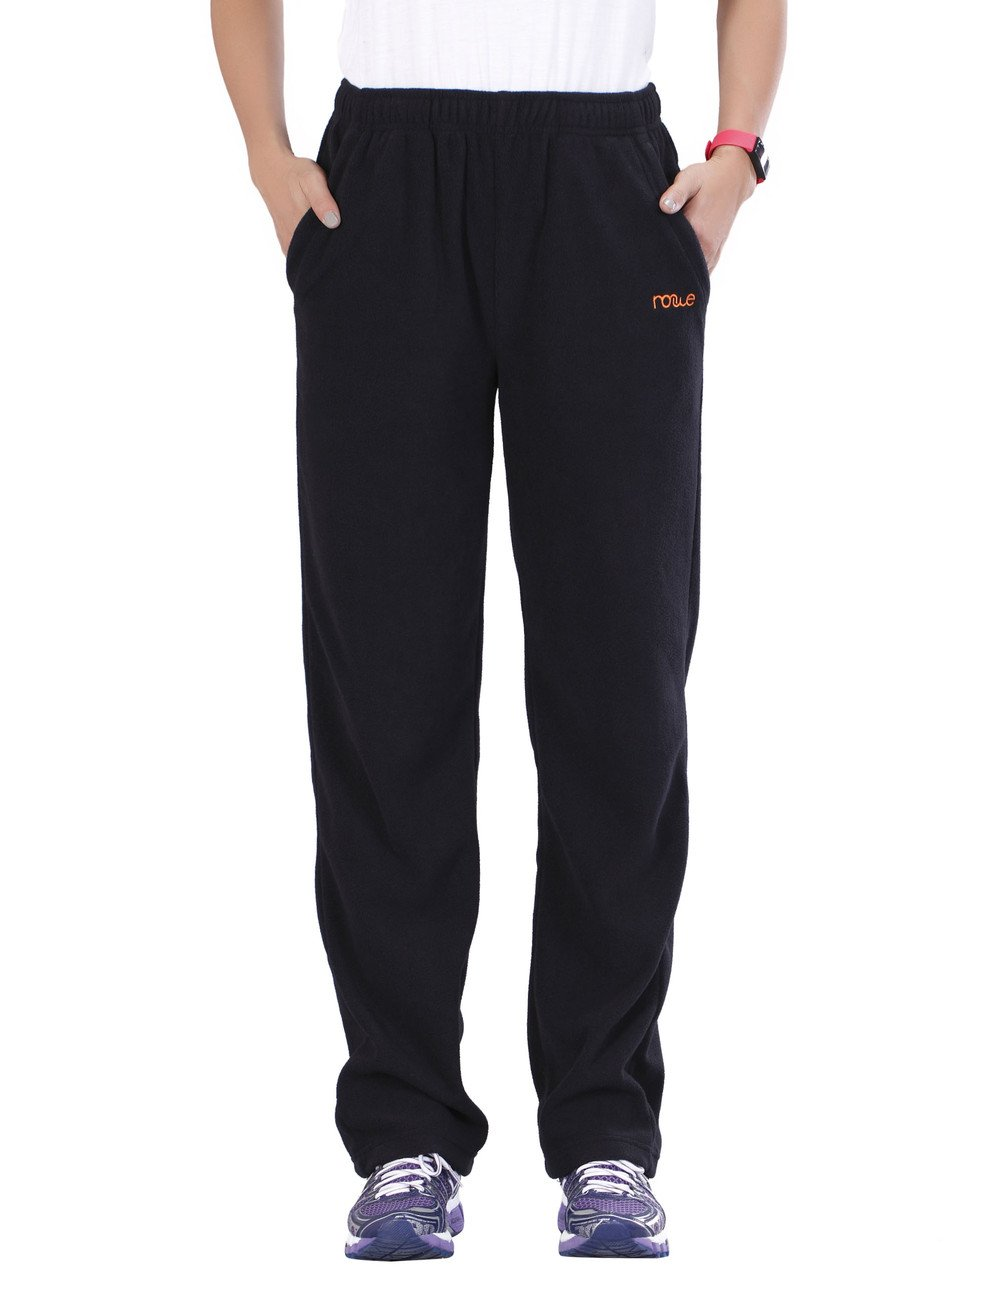 d87a5a3f83999 Nonwe Women s Outdoors Casual Fleece Hiking Sweat Pants product image